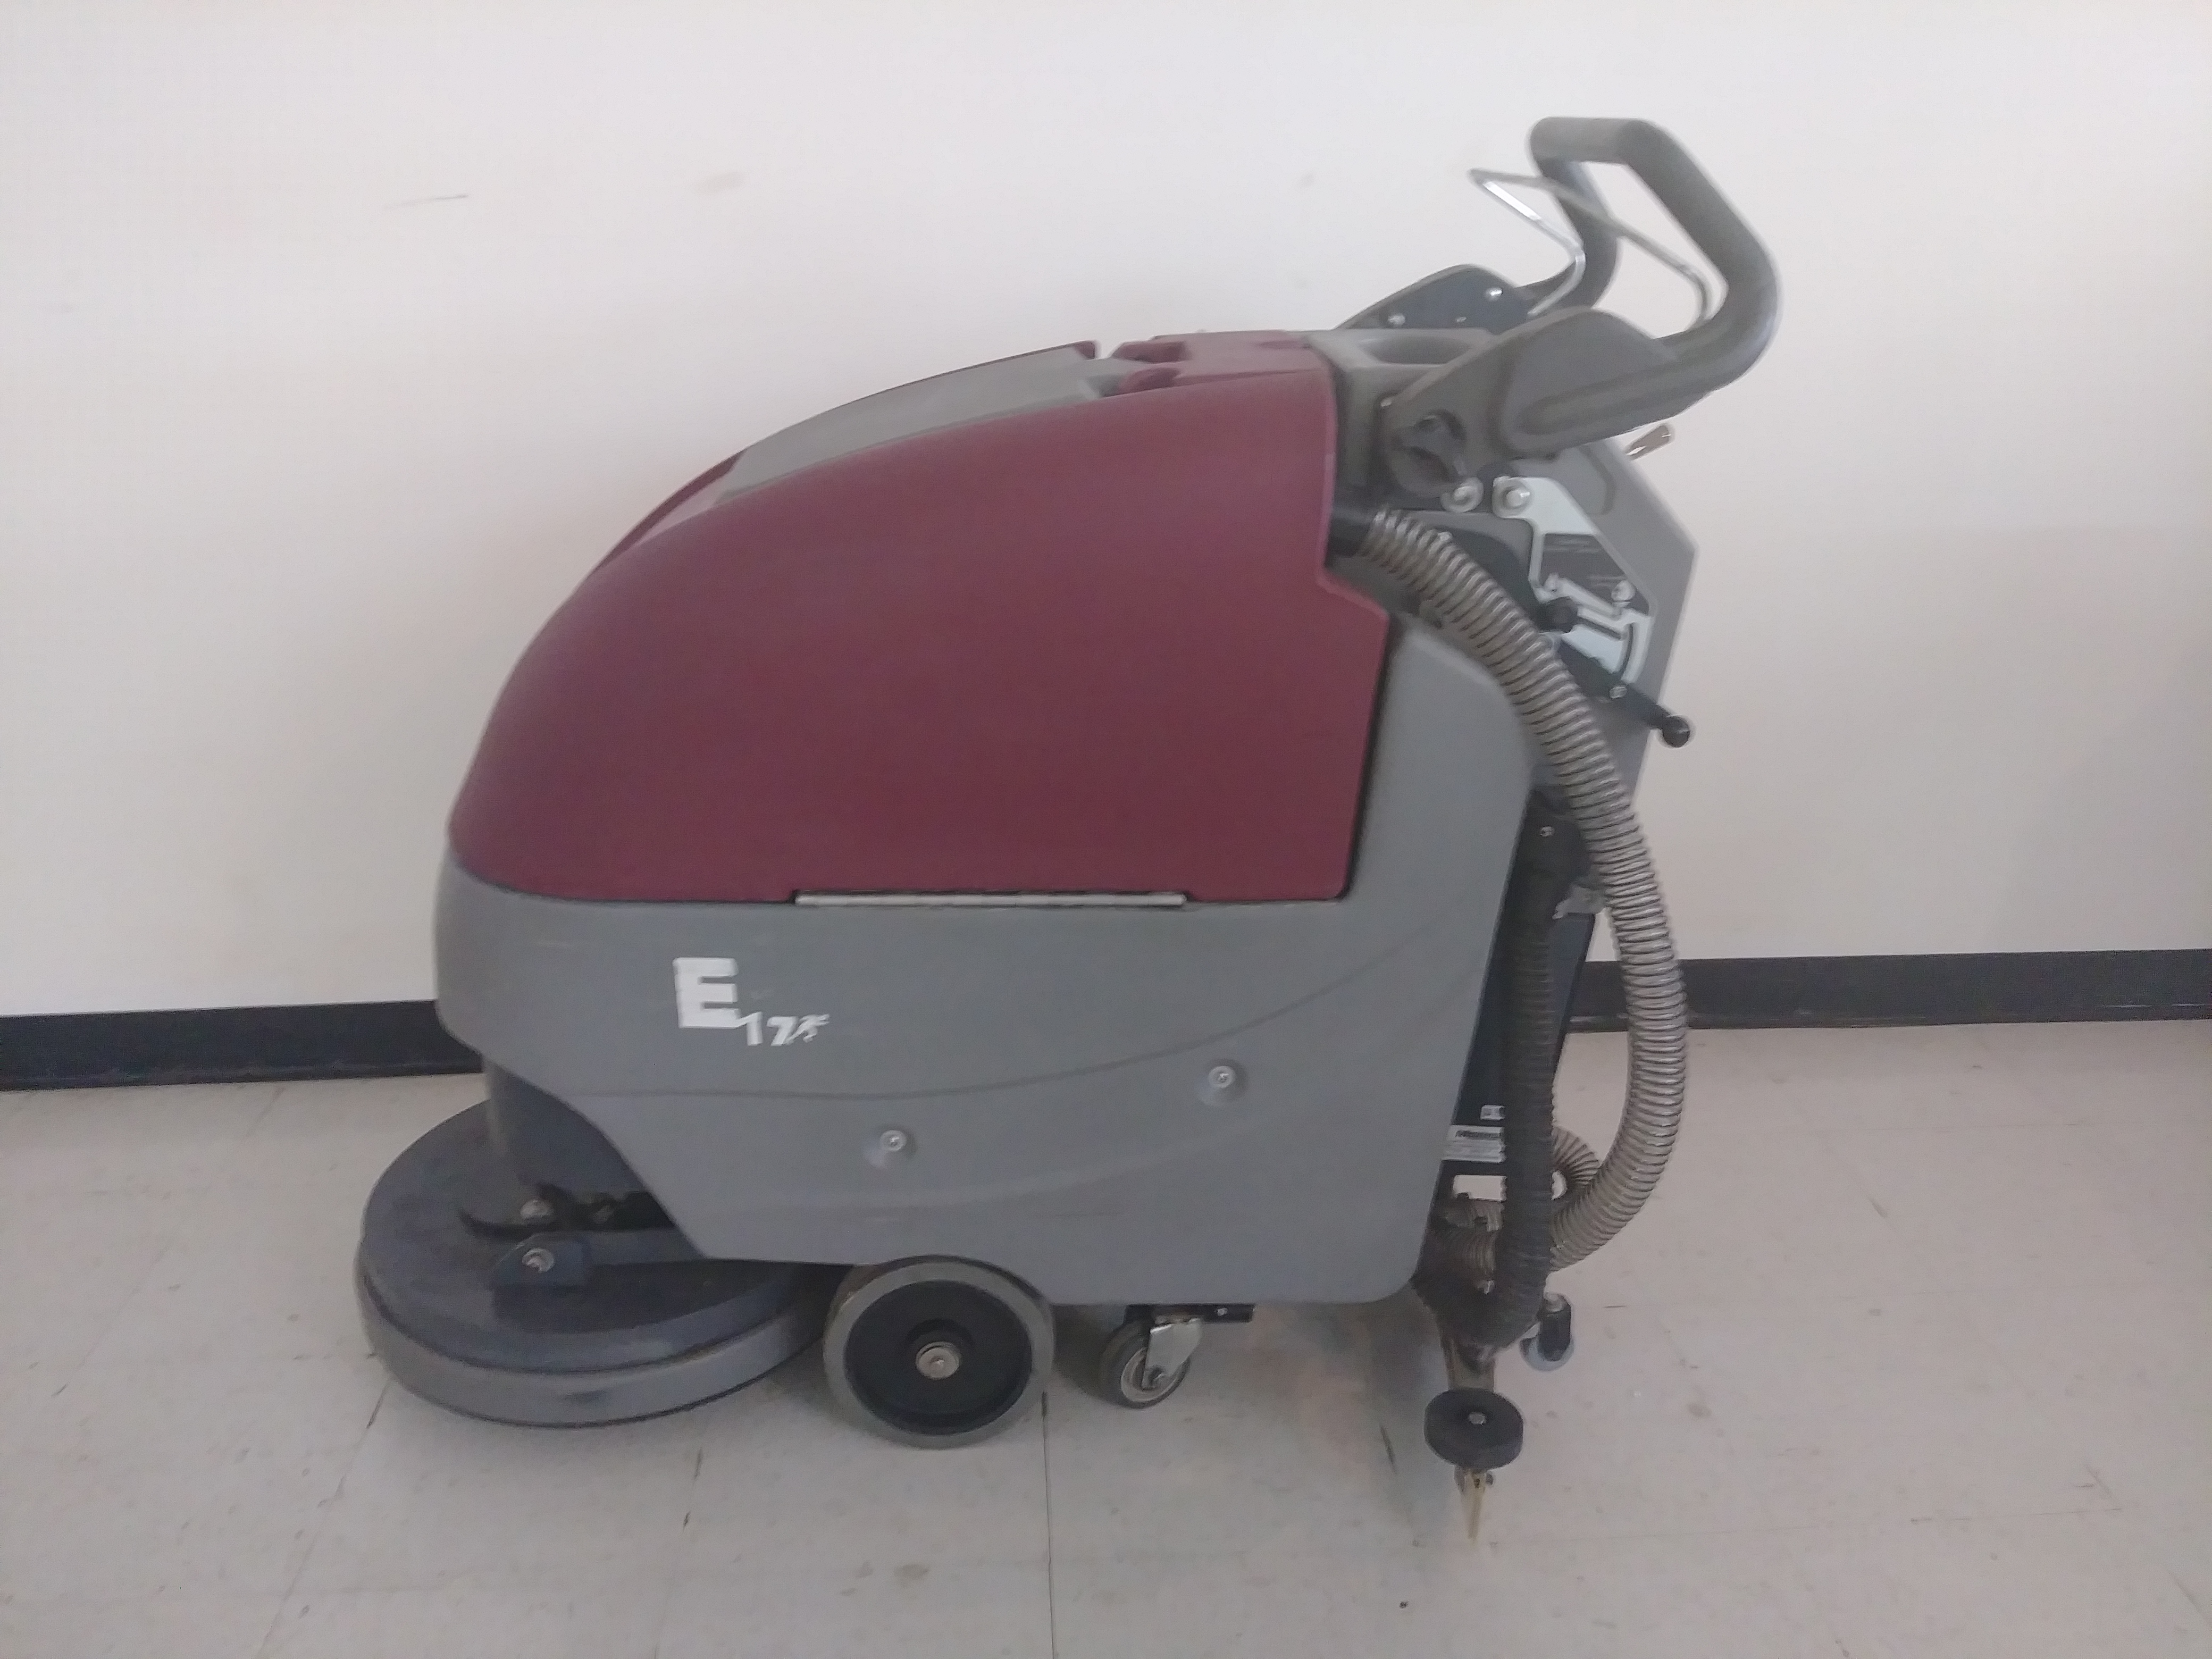 Minuteman E17 Pad Assist Professional Cleaning